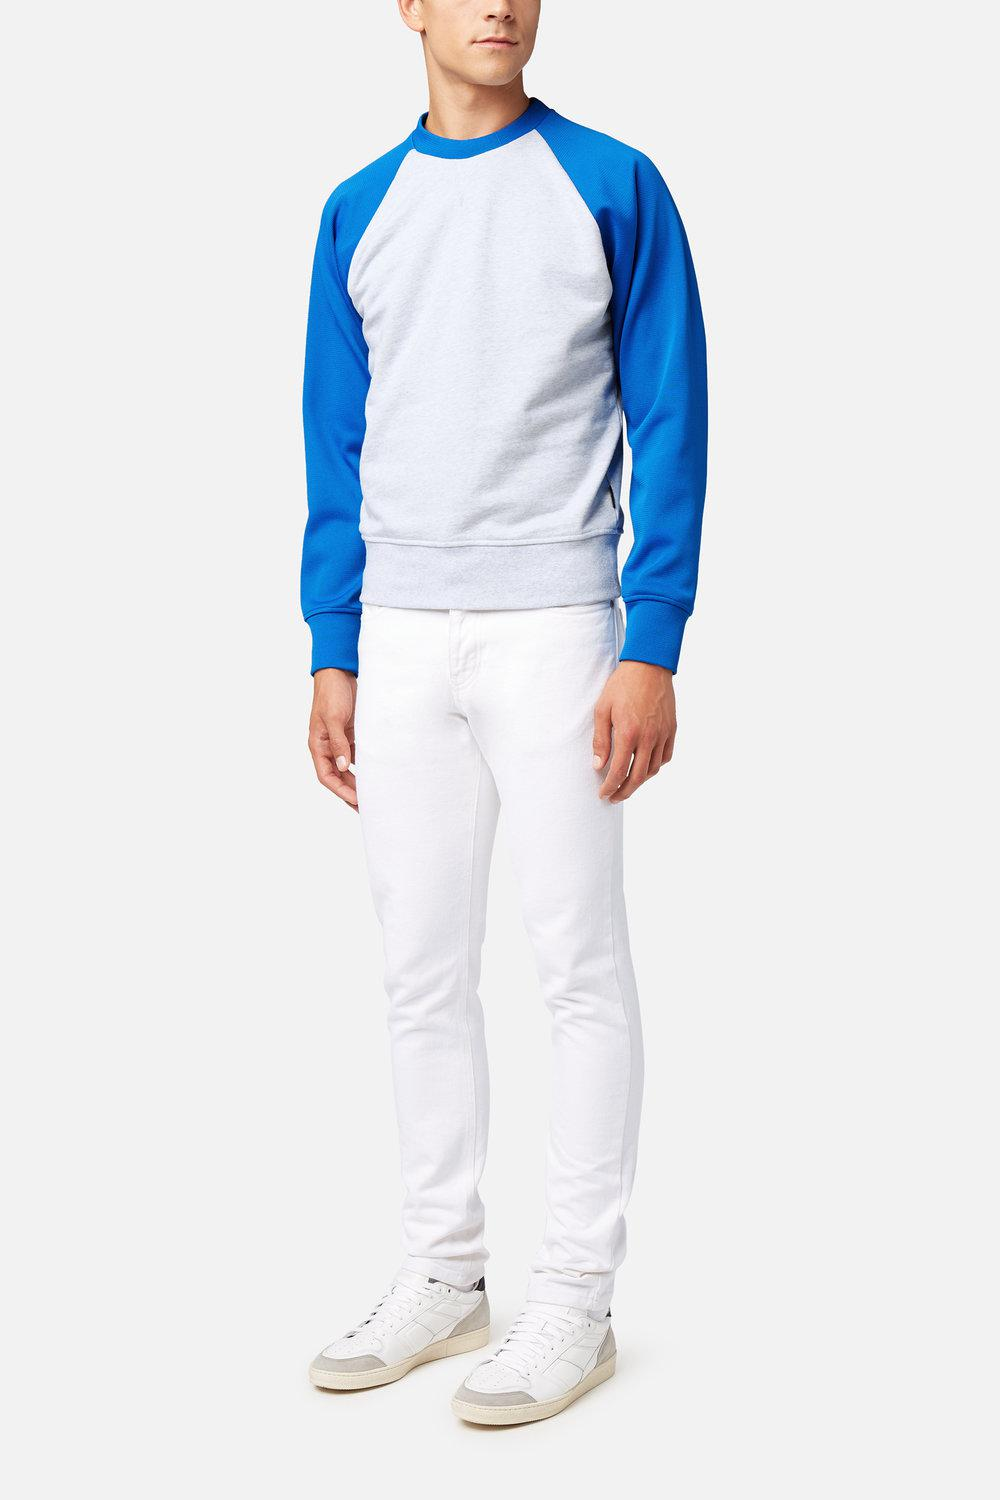 AMI Denim Ami Fit 5 Pockets Jeans in White for Men